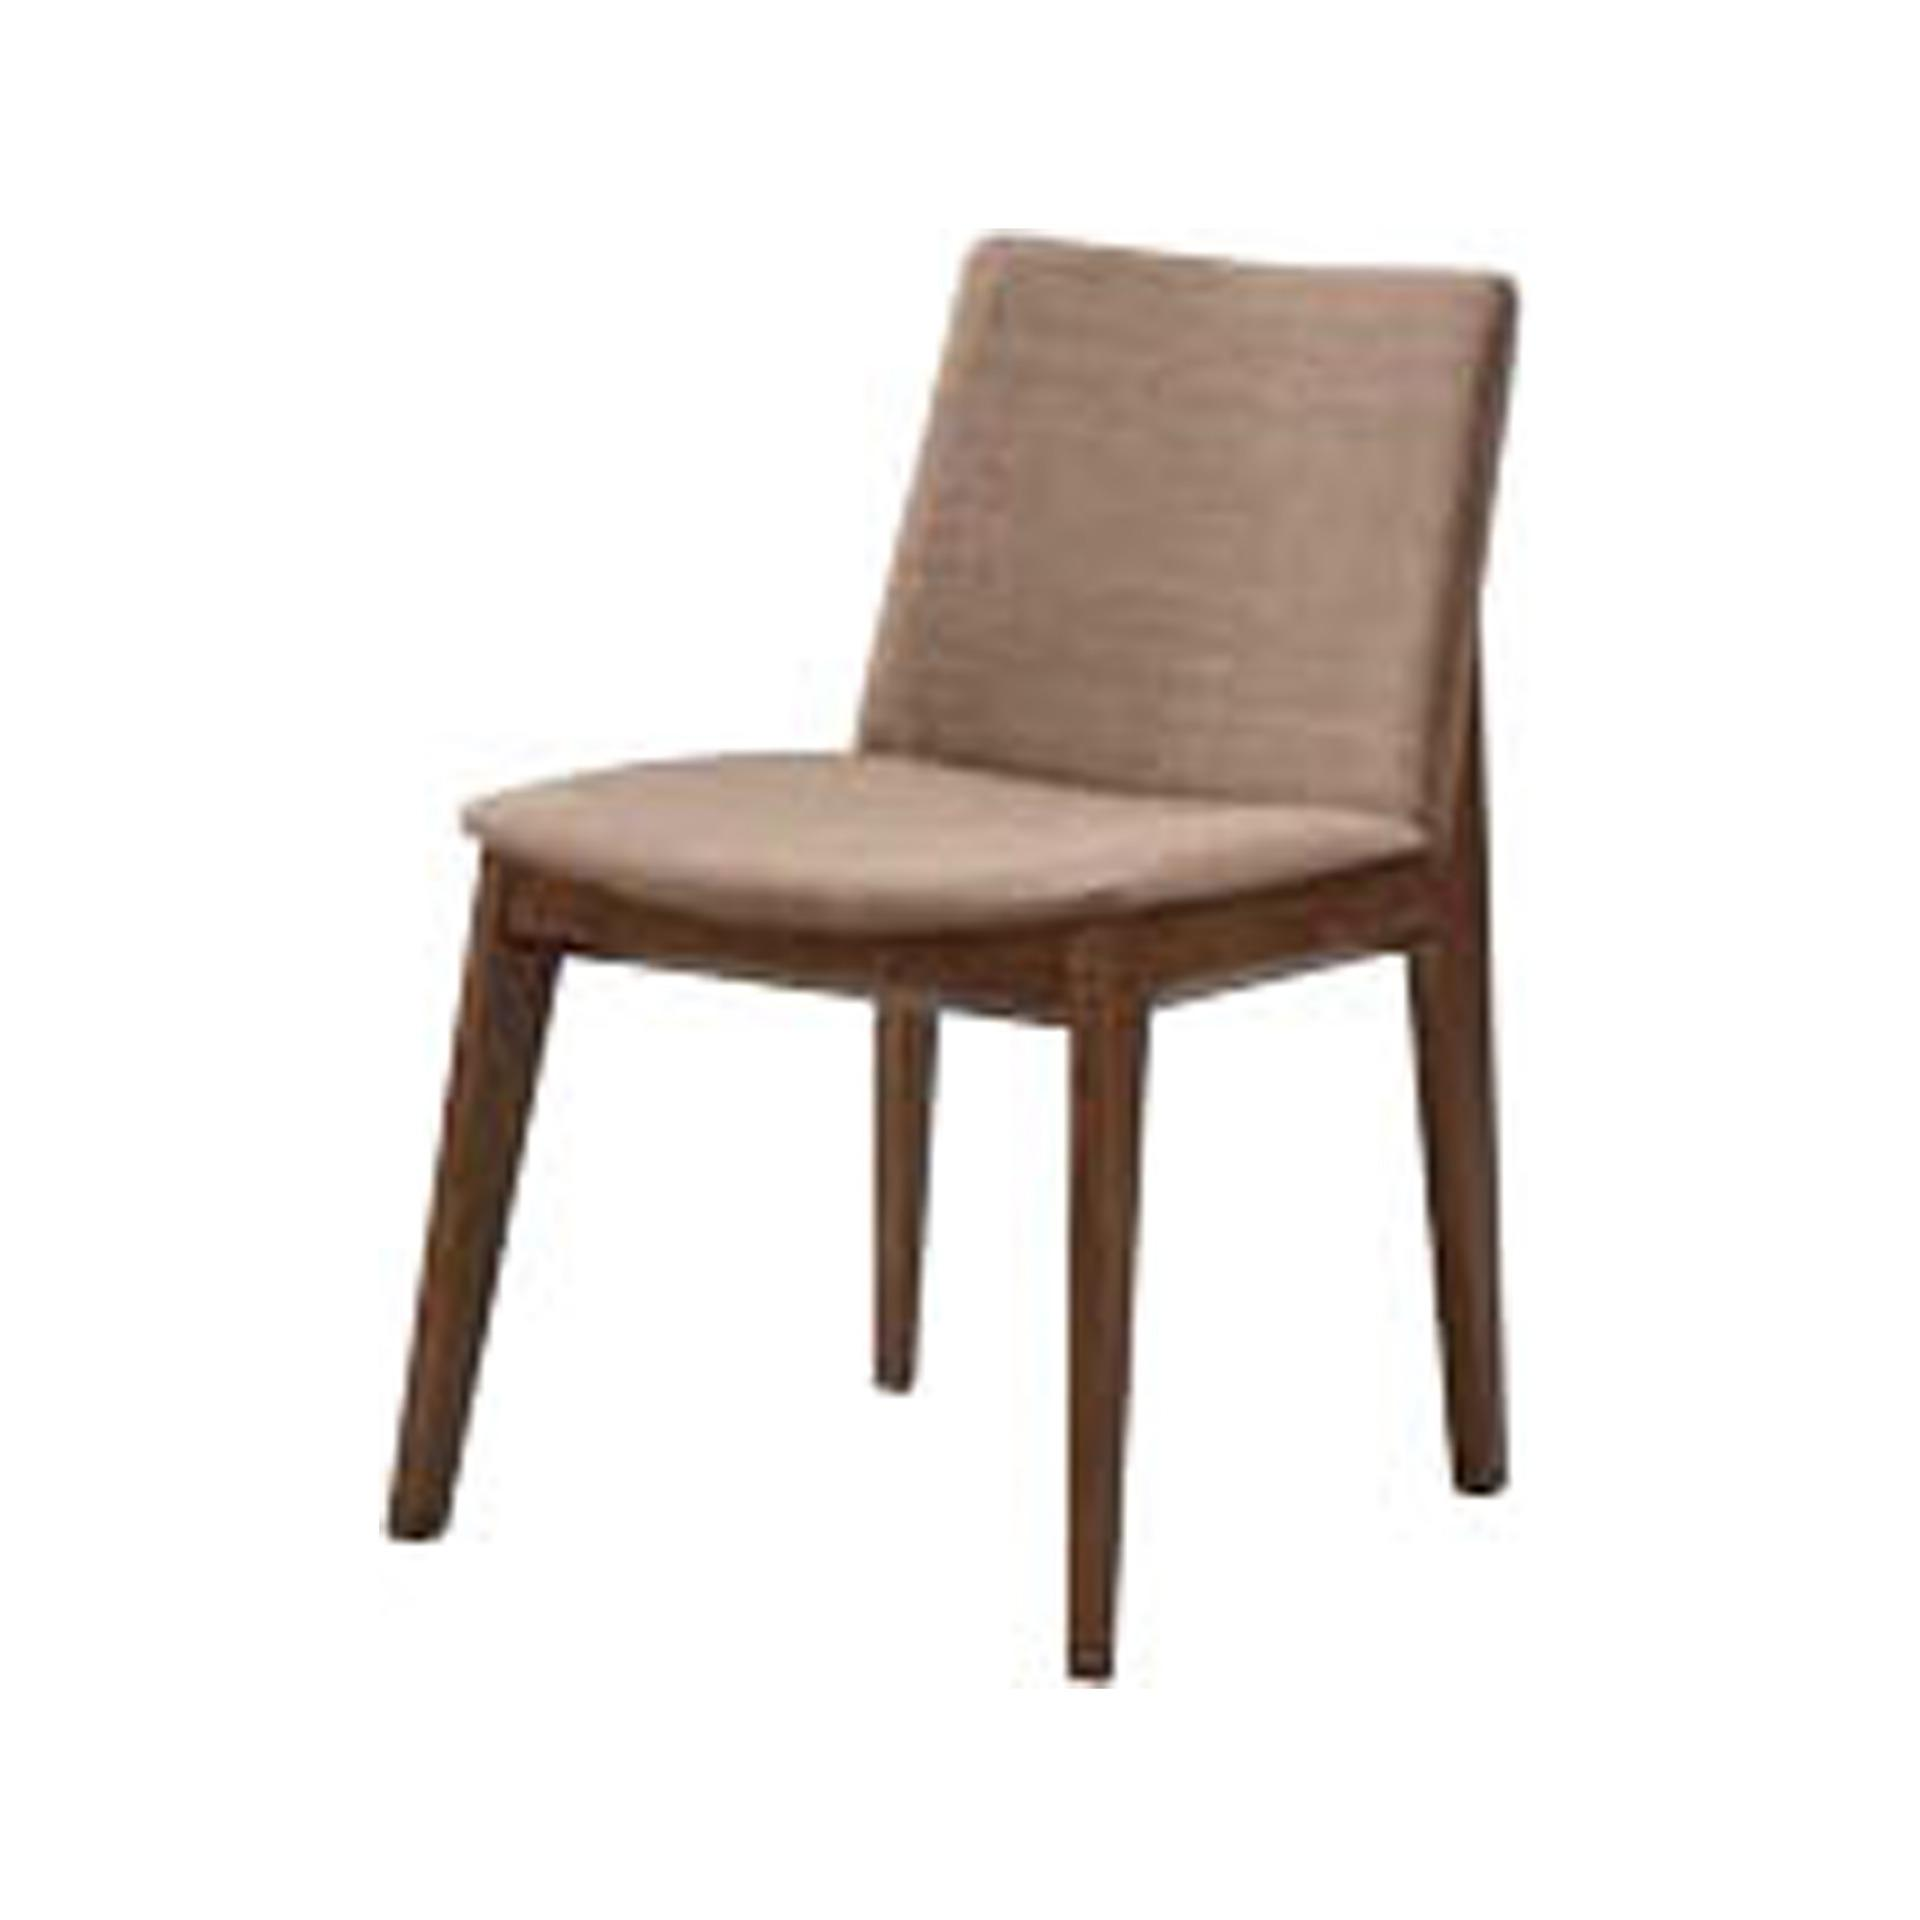 Lara Dining Chairs_Set of 2 (FREE DELIVERY)(FREE ASSEMBLY)